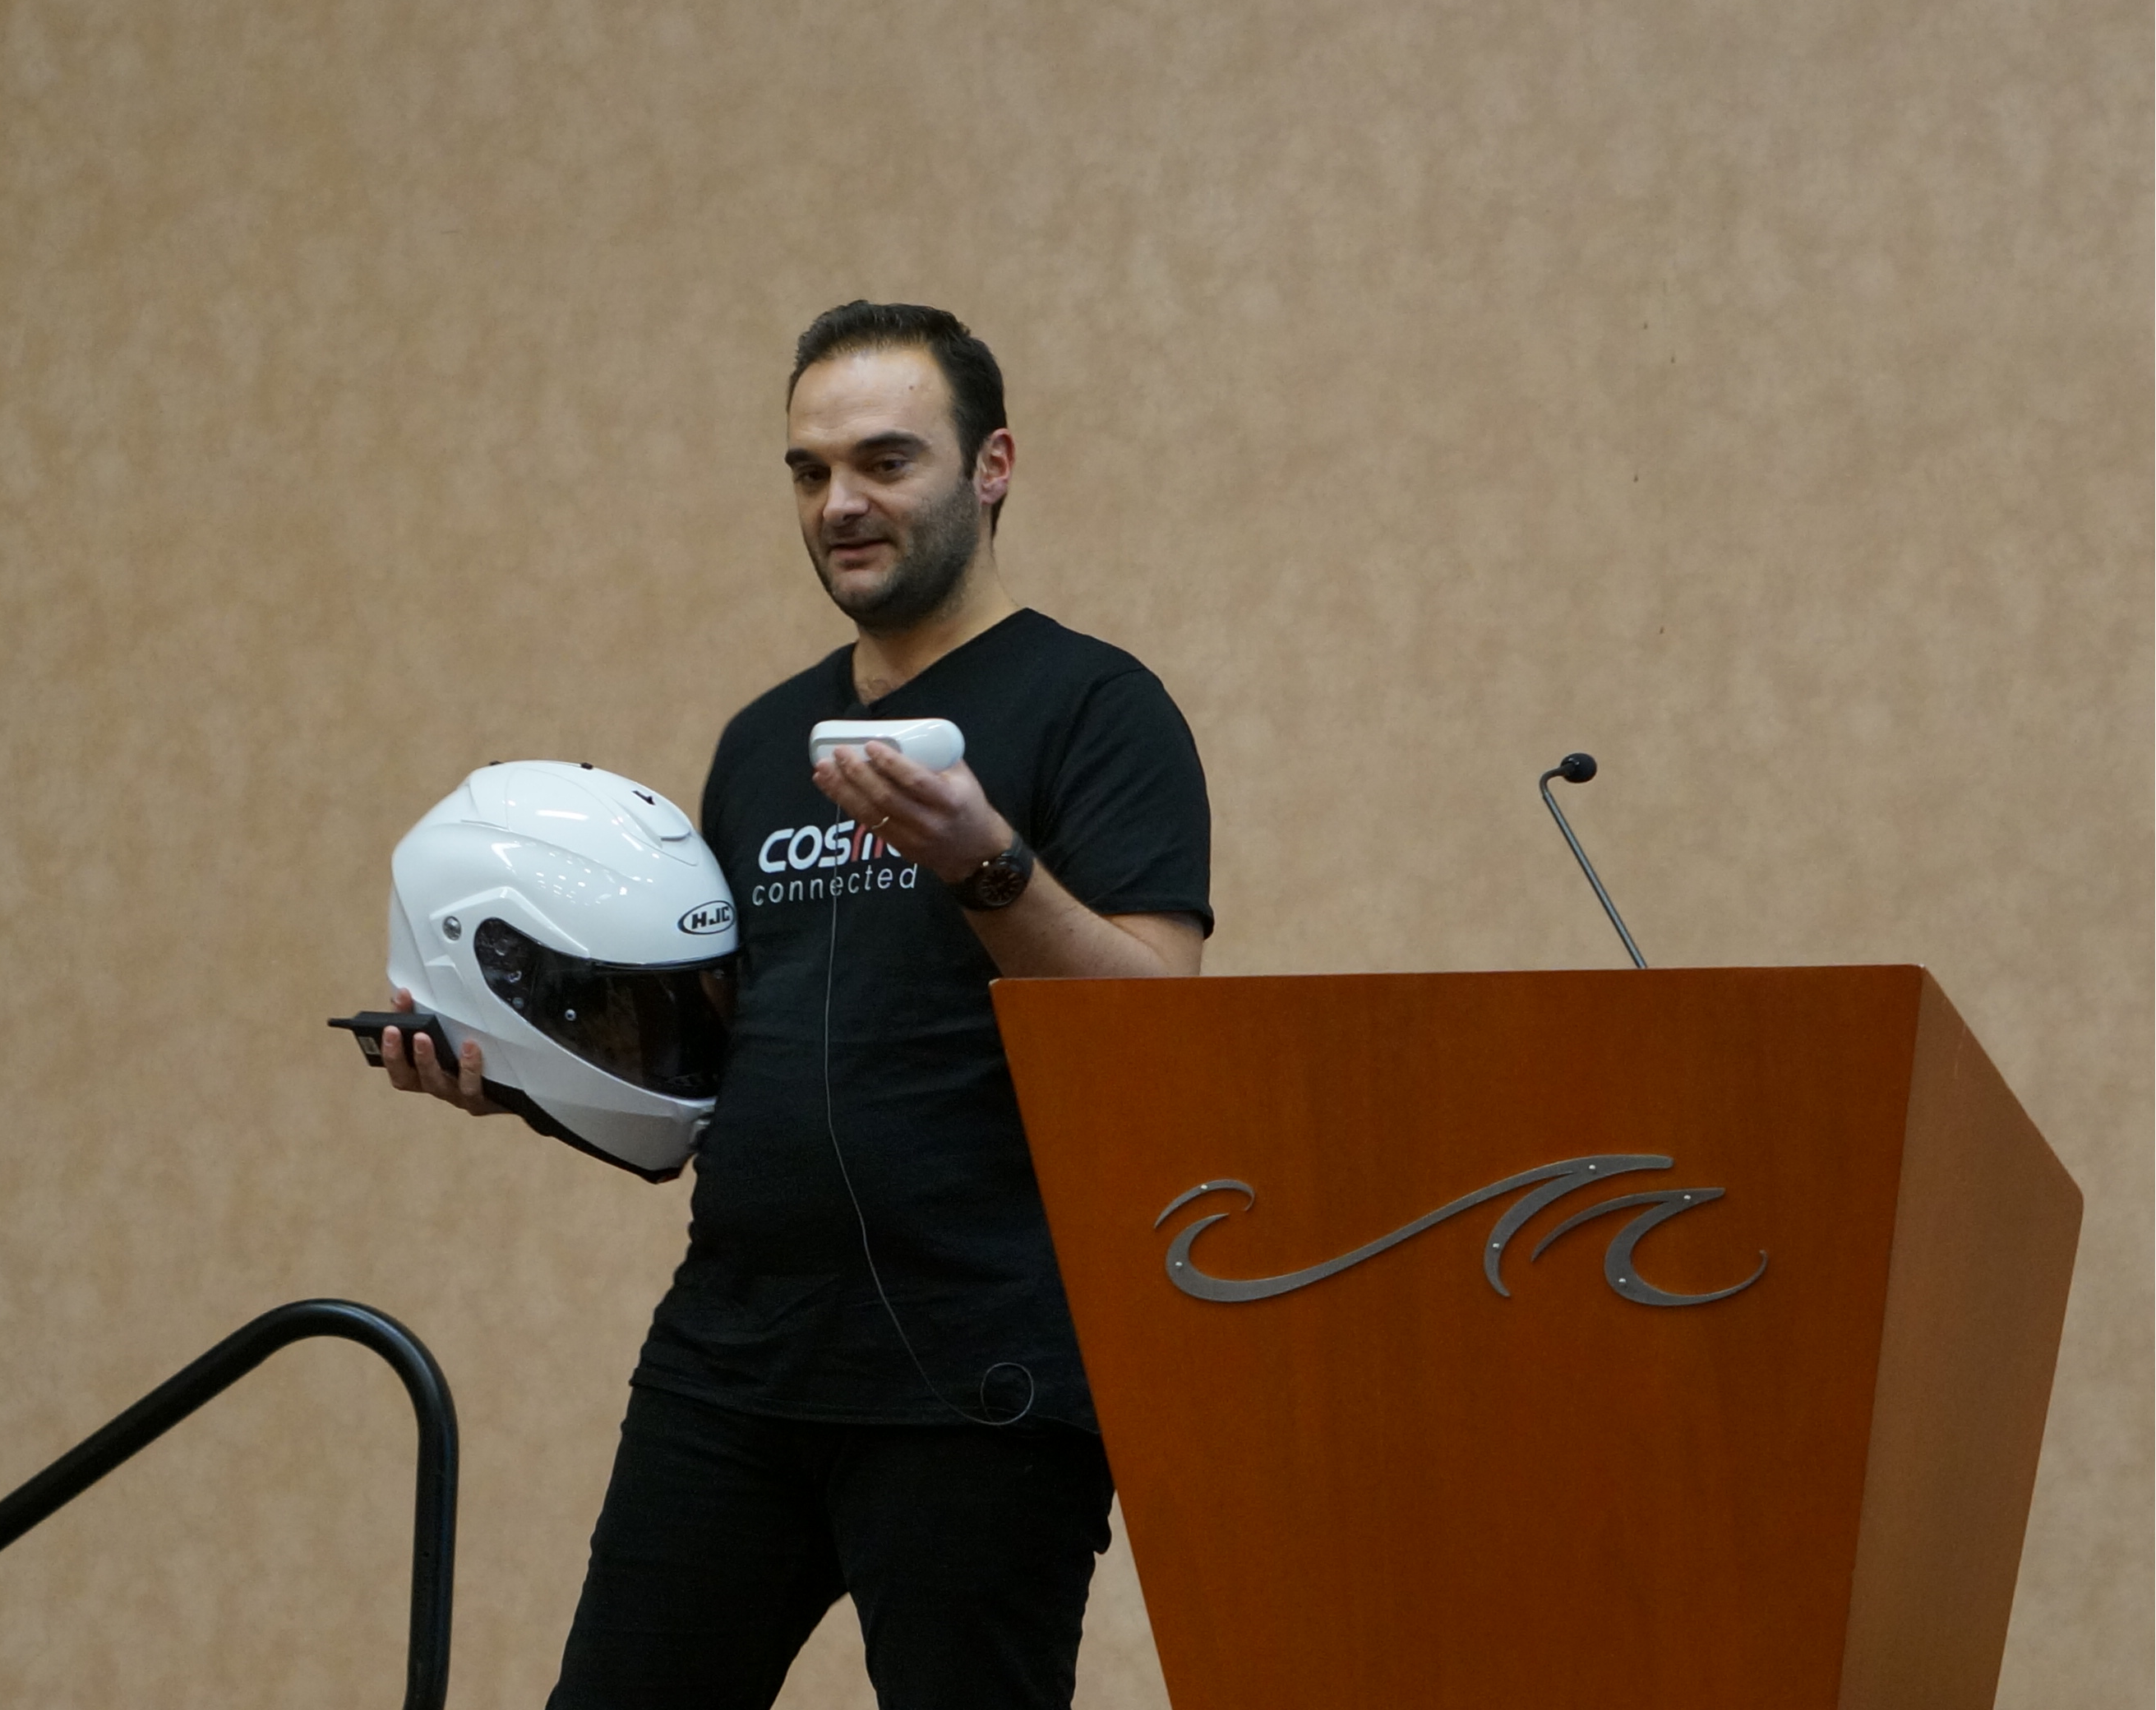 connected_helmet_thing_launchit